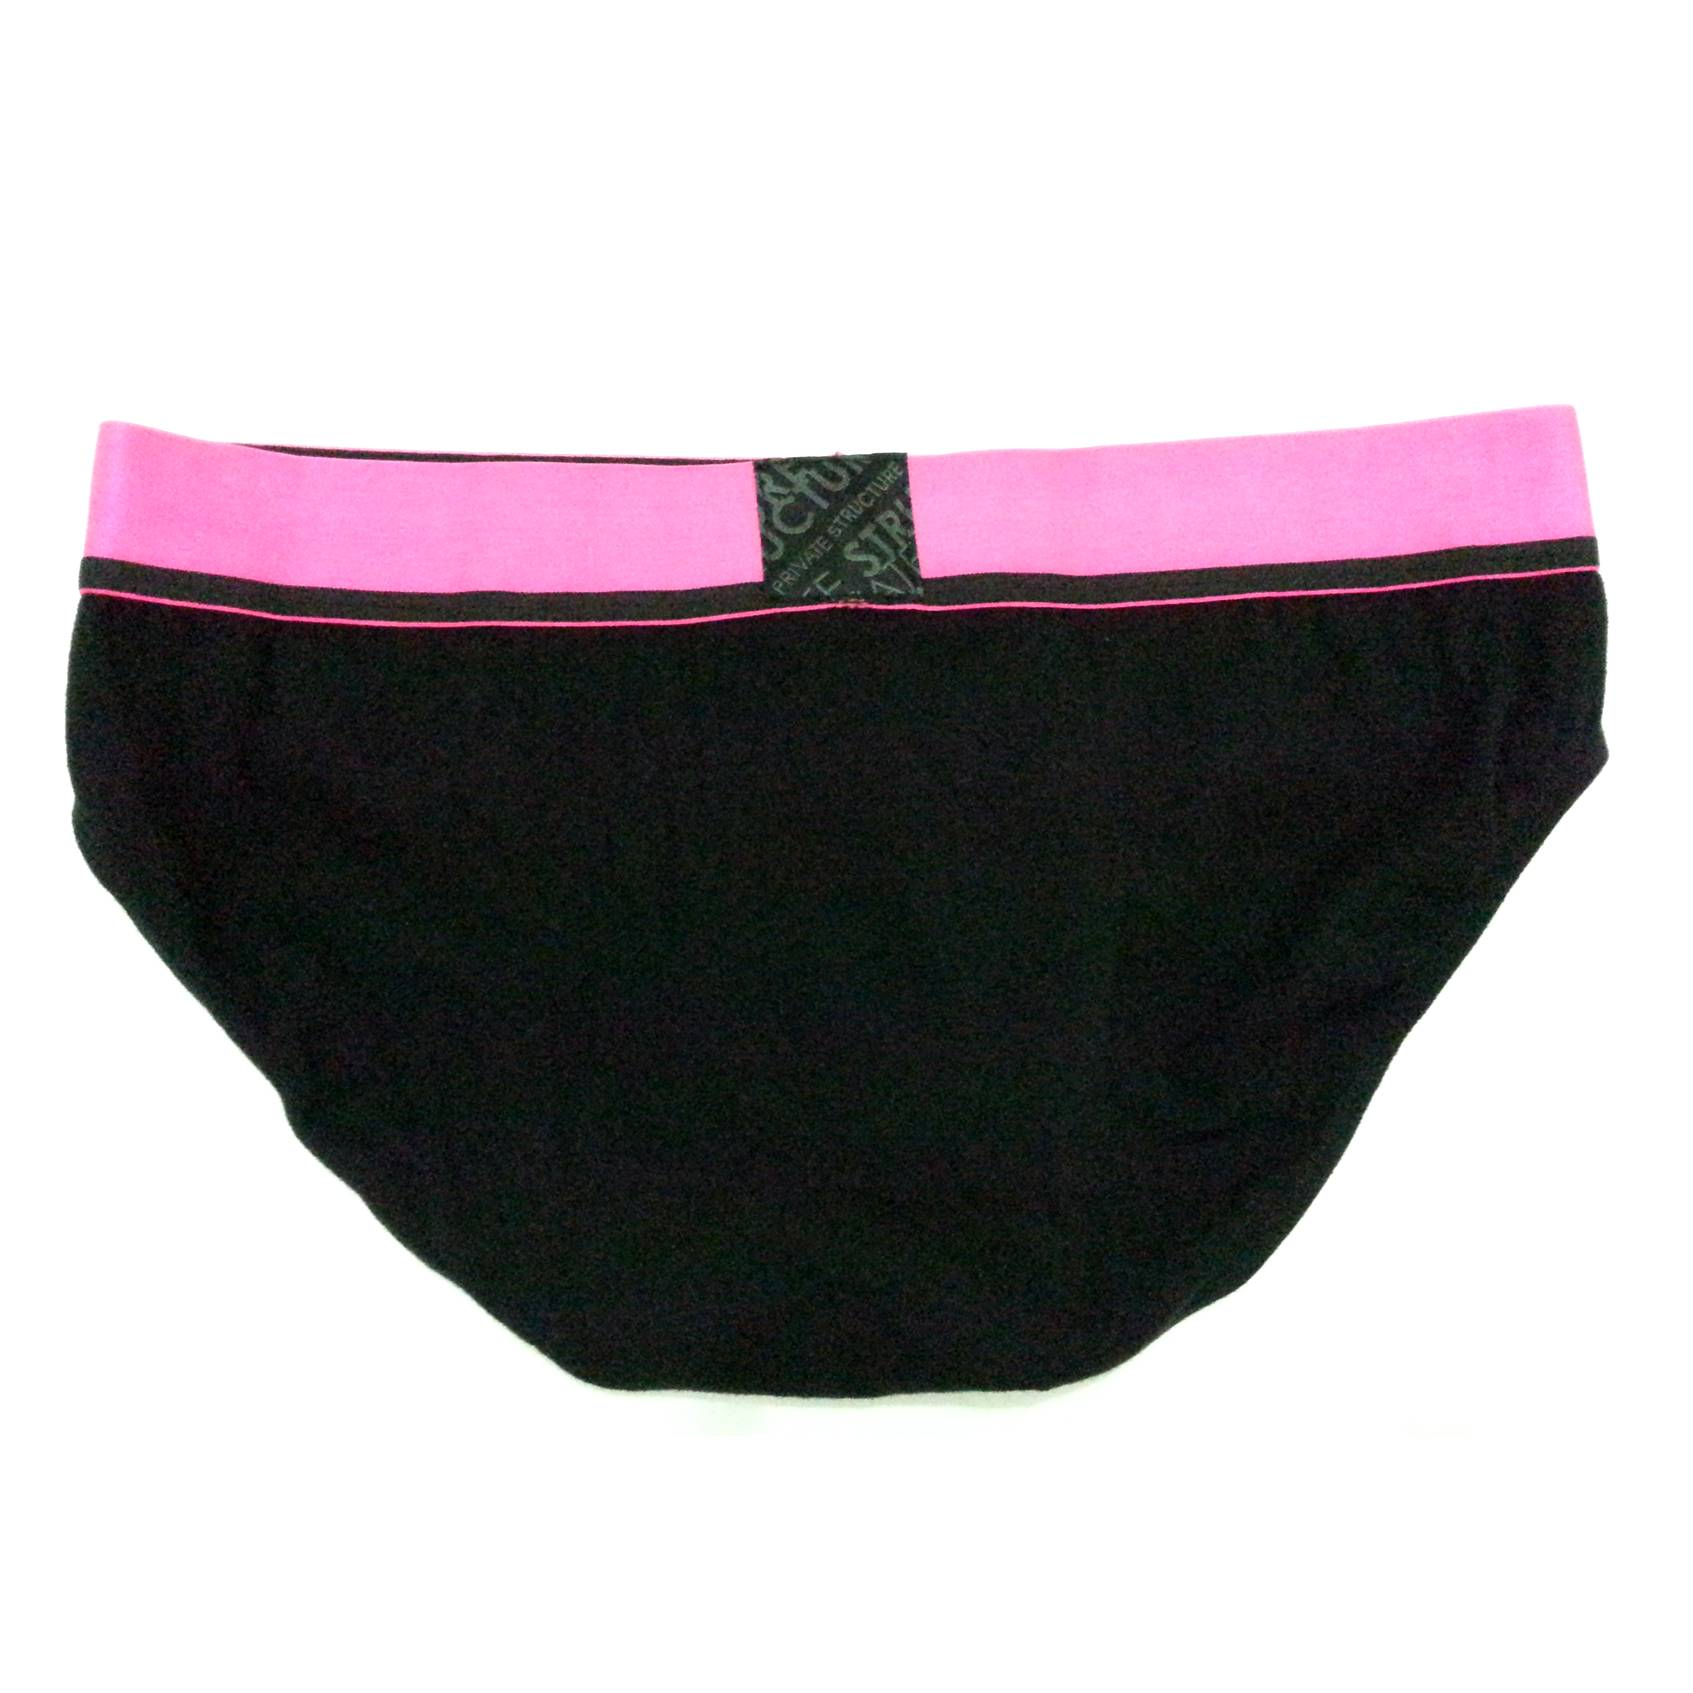 LUMINOUS Ribs Mini Brief, 1505